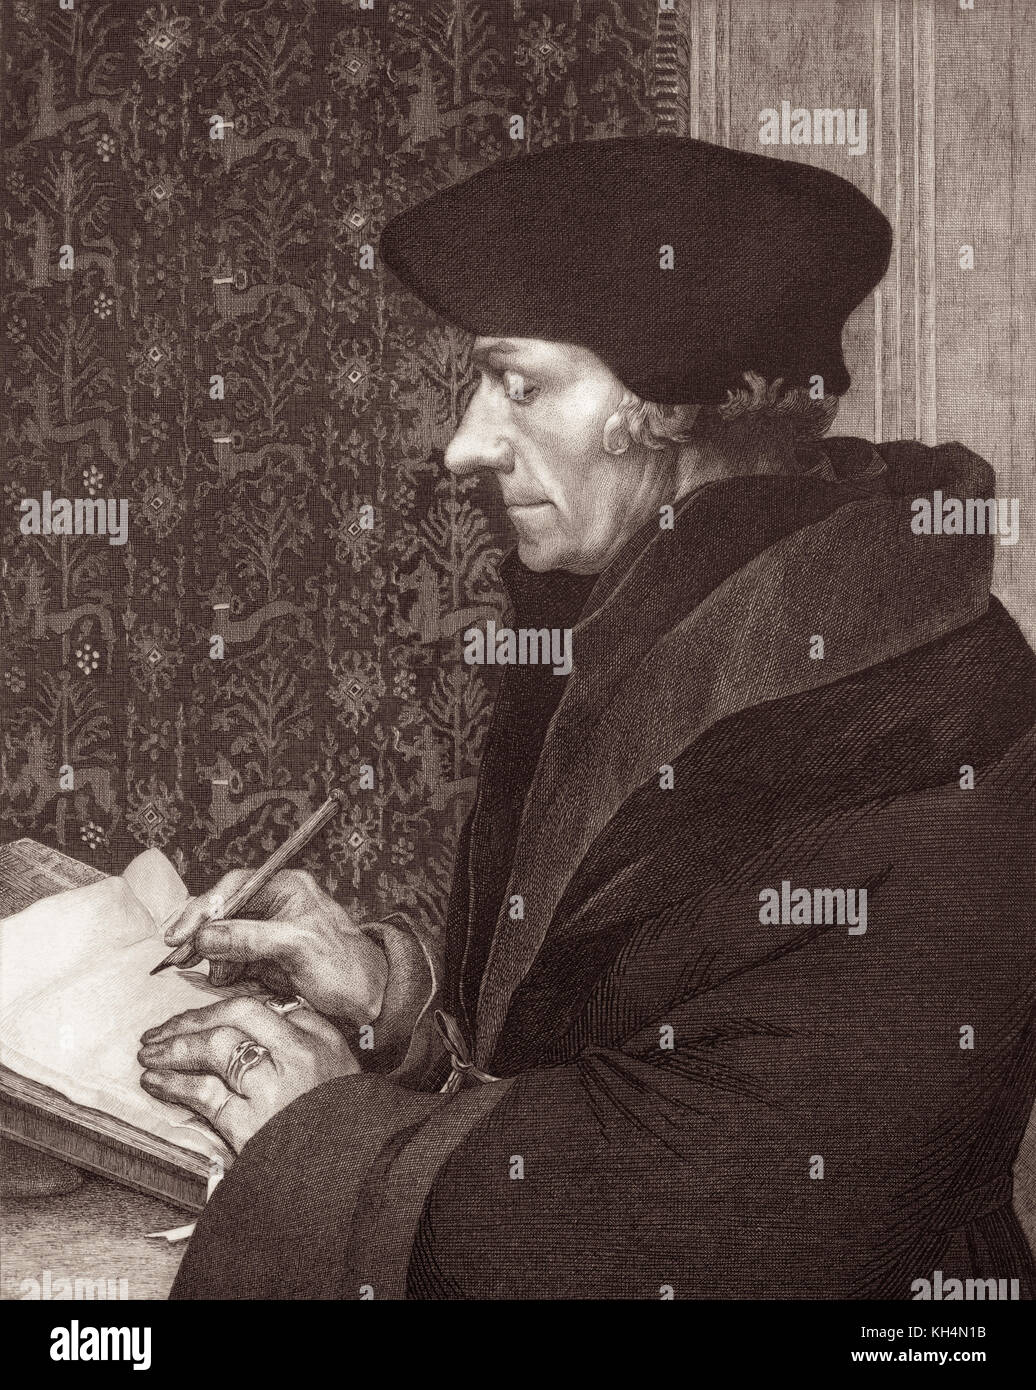 erasmus and luther Fatal discord has 63 ratings and 11 reviews marks54 said: i recently read the luther biography by eric metaxas and really enjoyed it that is what promp.